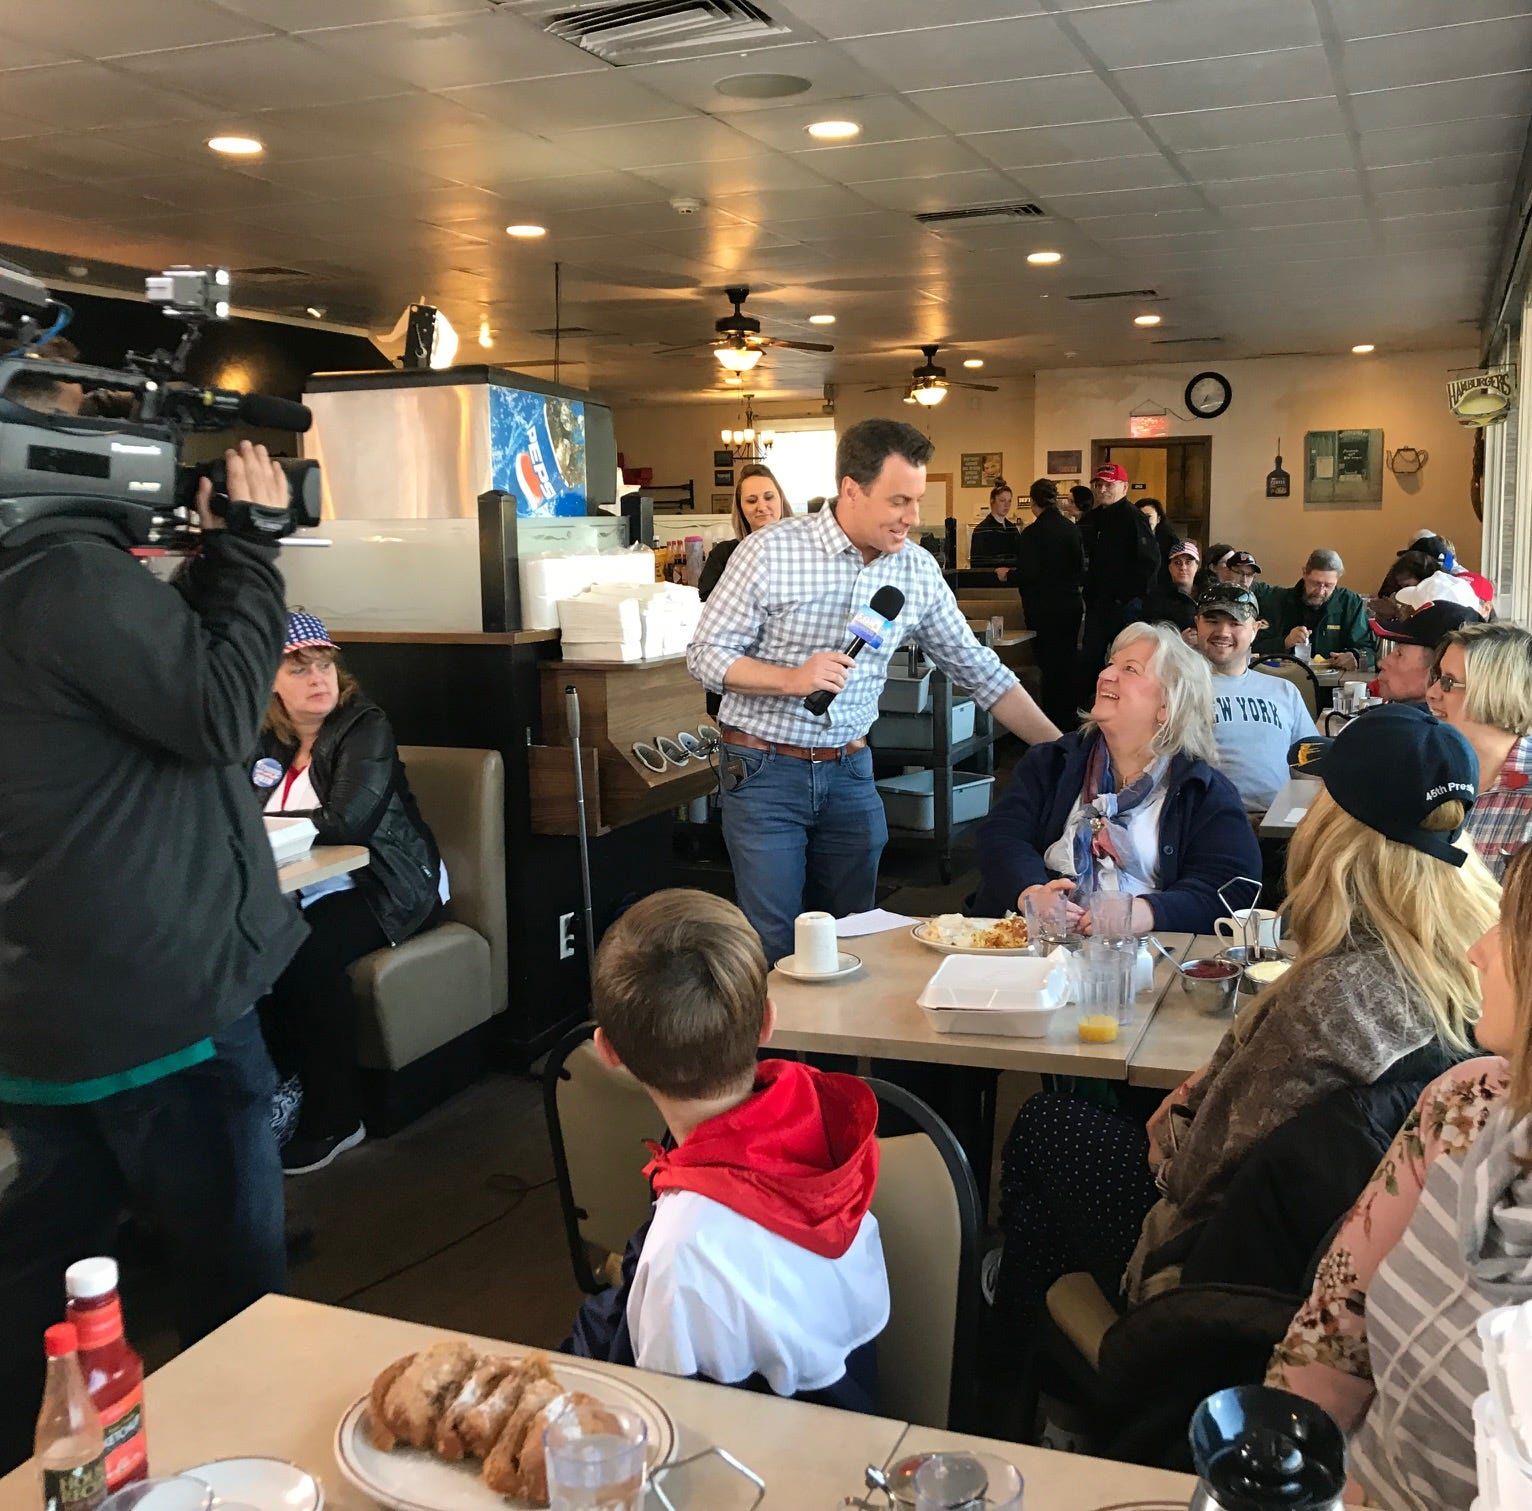 'Fox & Friends' visits The Pancake Place in Green Bay to talk politics, President Trump